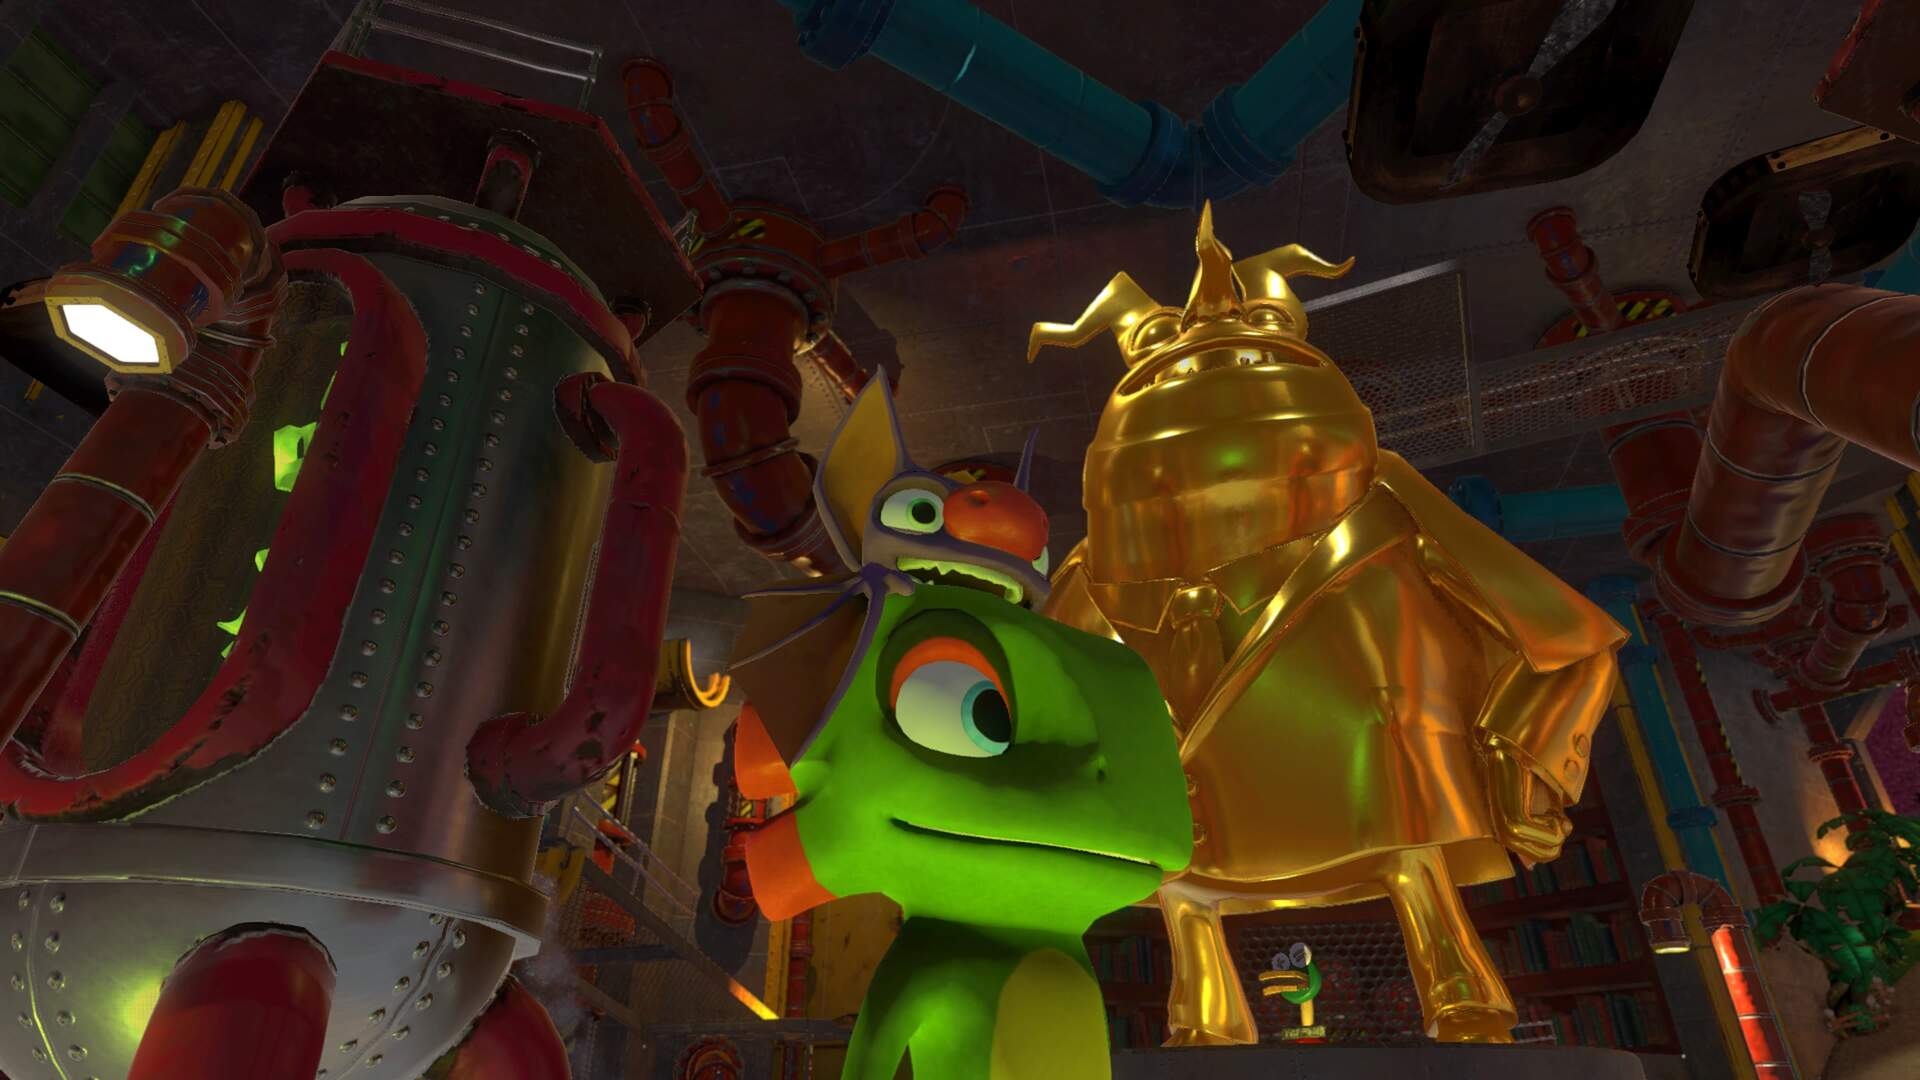 Yooka Laylee Hivory Towers - Pagie Locations, Butterfly Heart, Power Extender